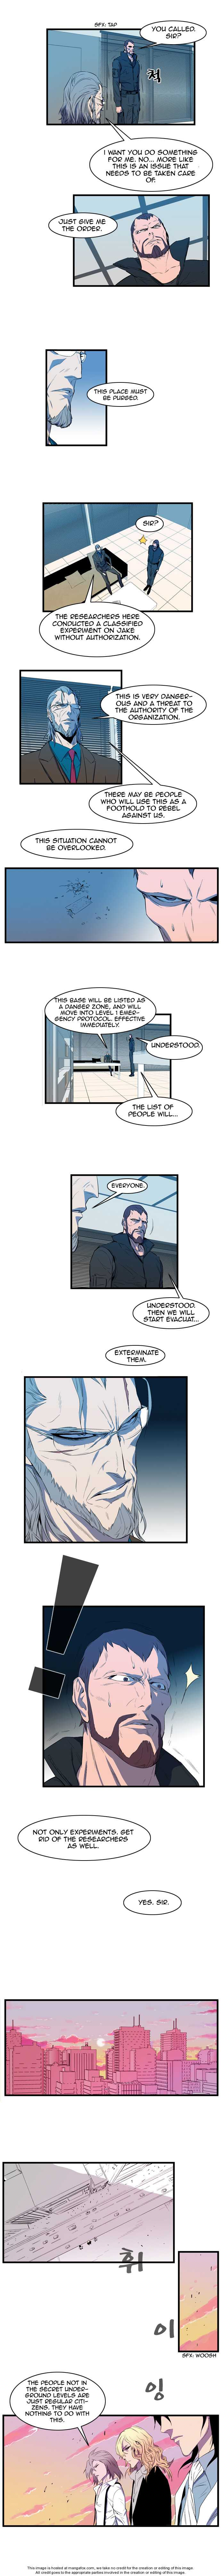 Noblesse 83 Page 2